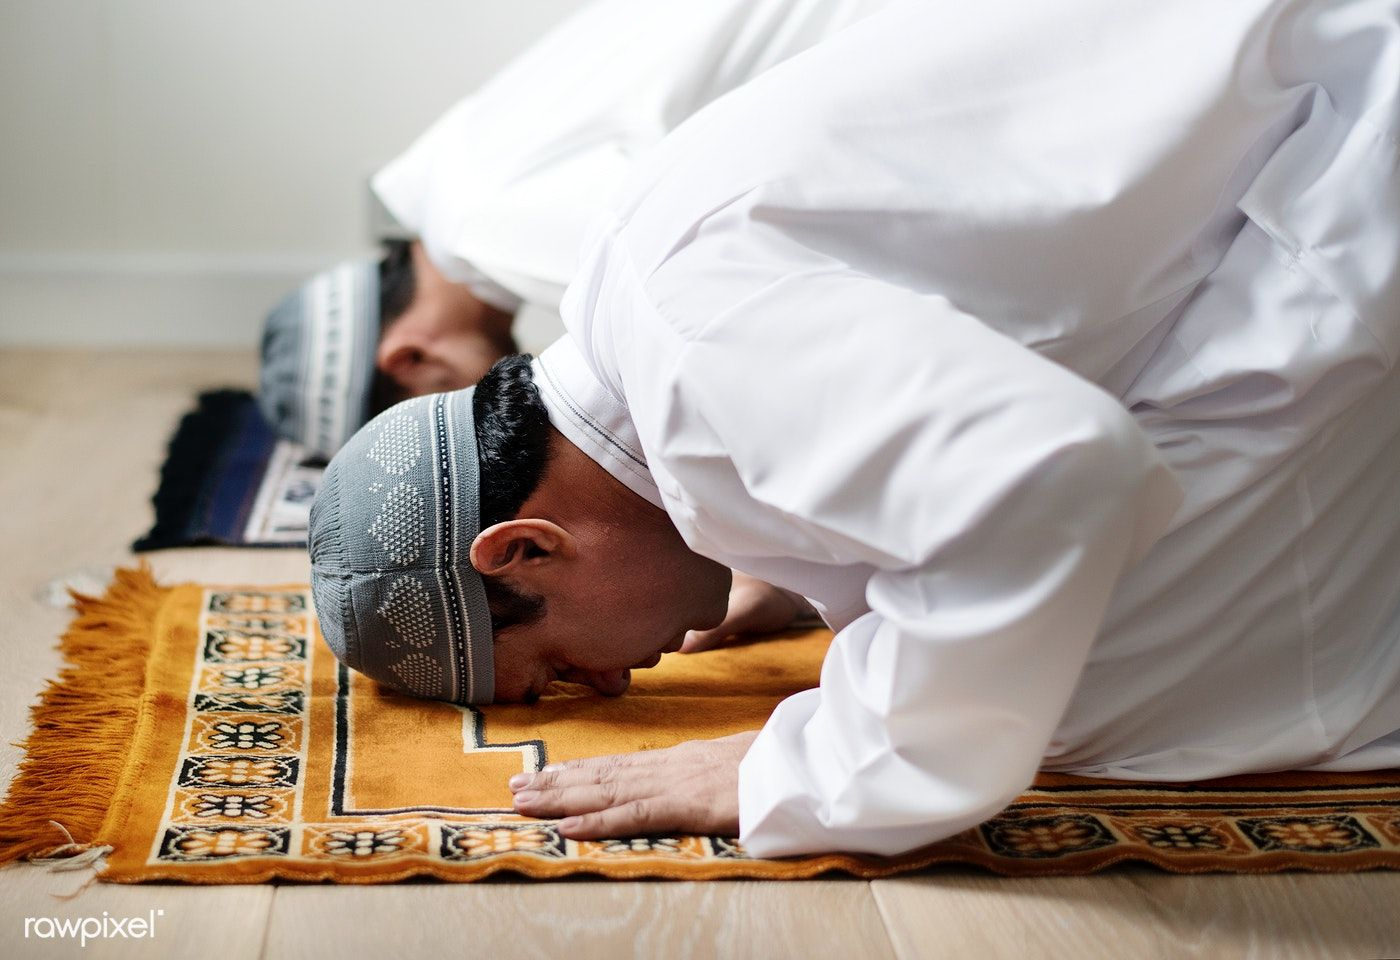 Download premium image of Muslim men praying during Ramadan 418071 | Muslim  men, Ramadan, Muslim